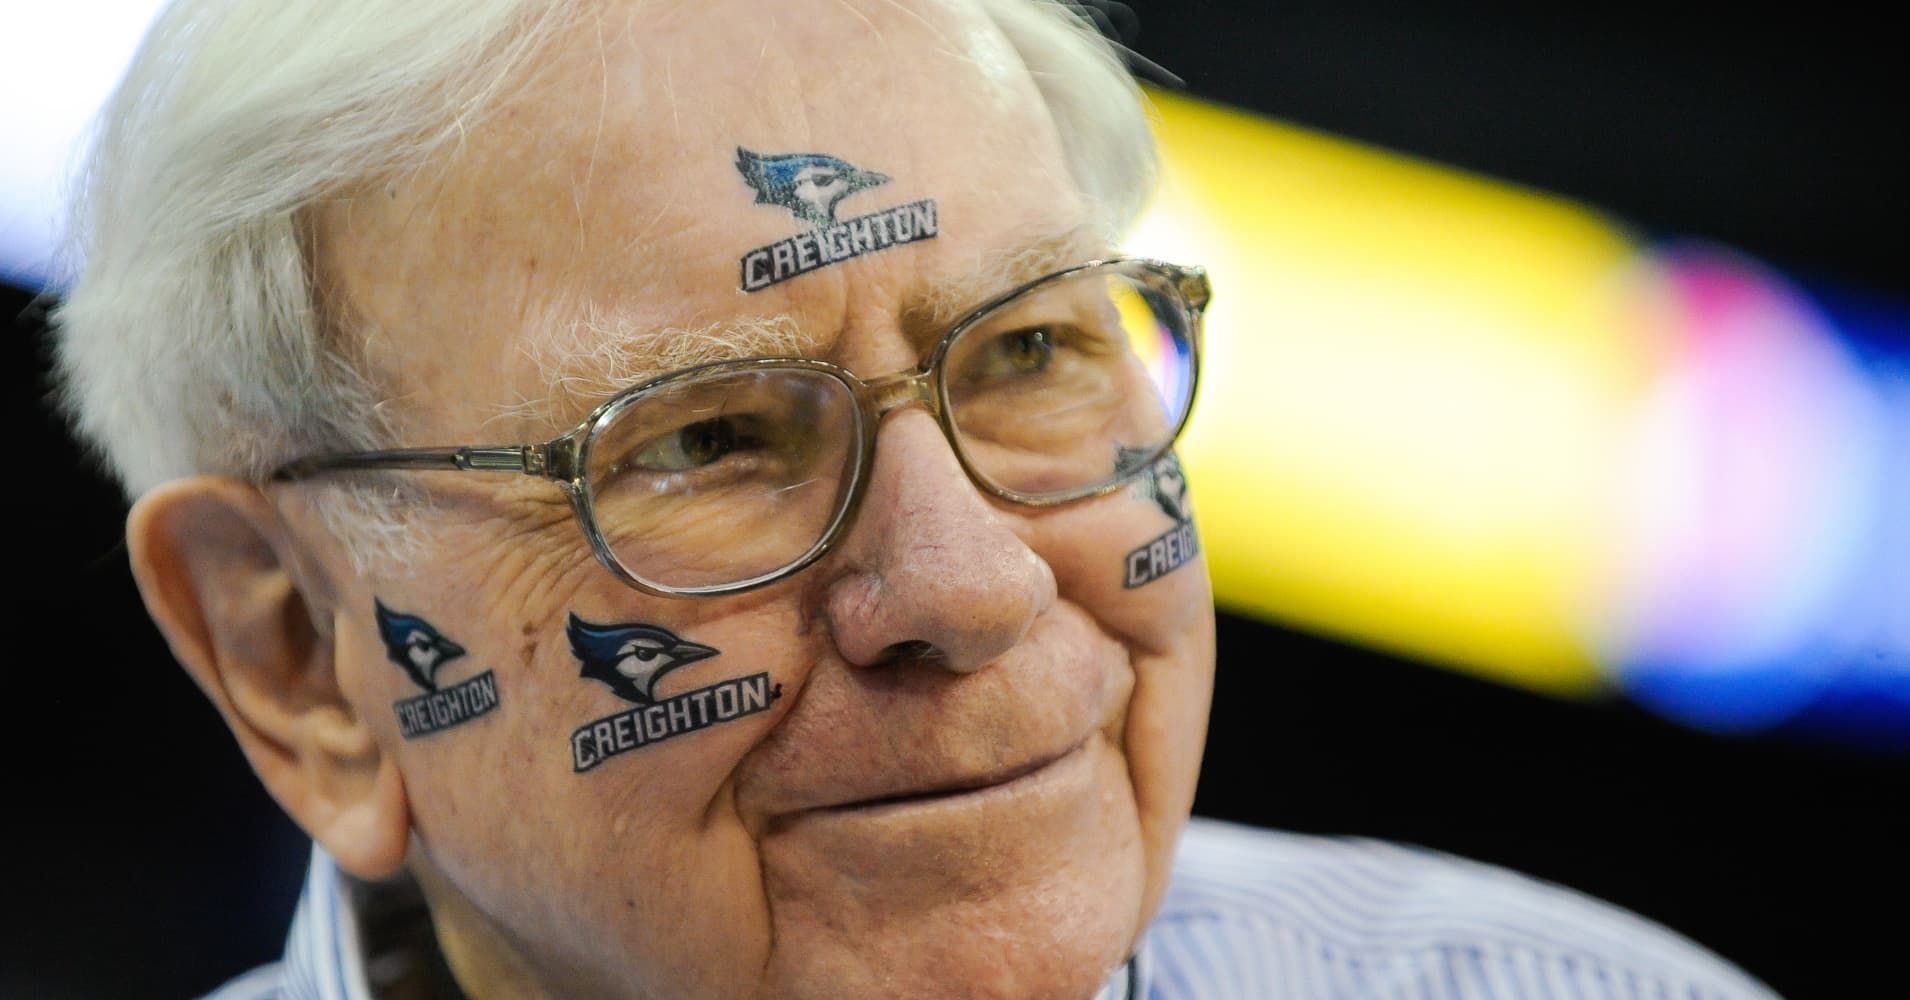 The winner of Warren Buffett's March Madness office pool could get $1 million a year for life